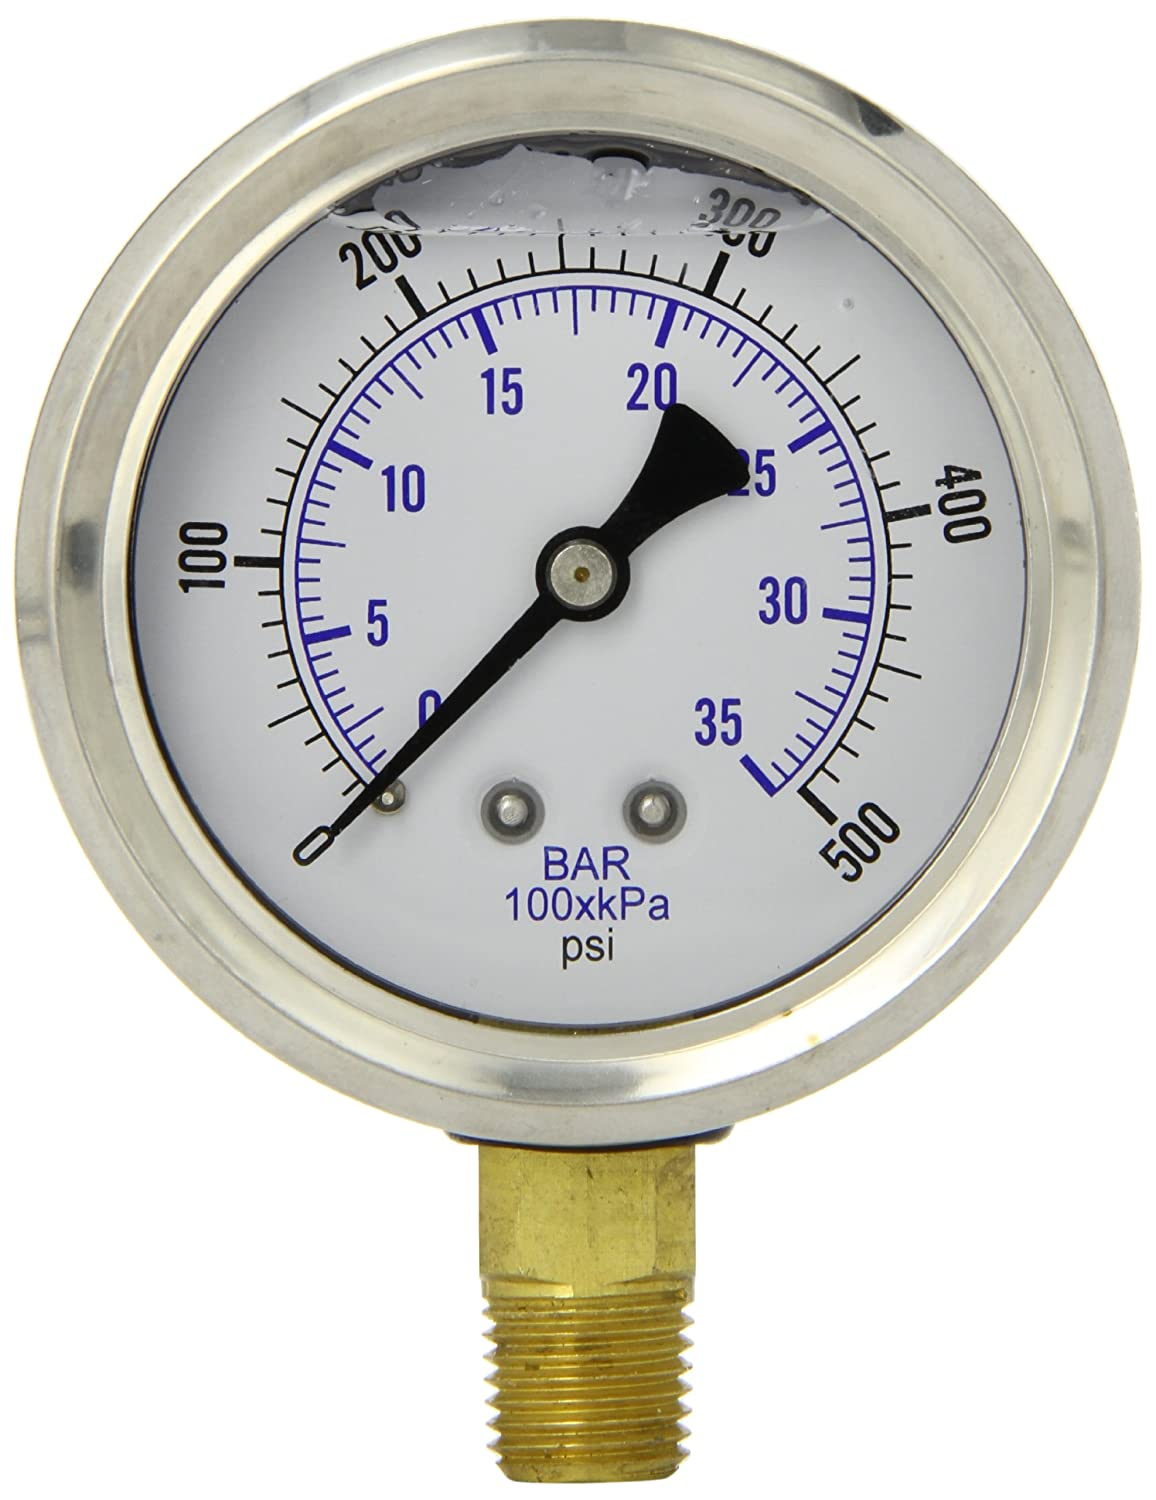 PIC Gauge PRO 201L 254J Glycerin Filled Industrial Bottom Mount Pressure Gauge with Stainless Steel Case Brass Internals Plastic Lens 2 1 2 Dial Size 1 4 Male NPT 0 500 psi